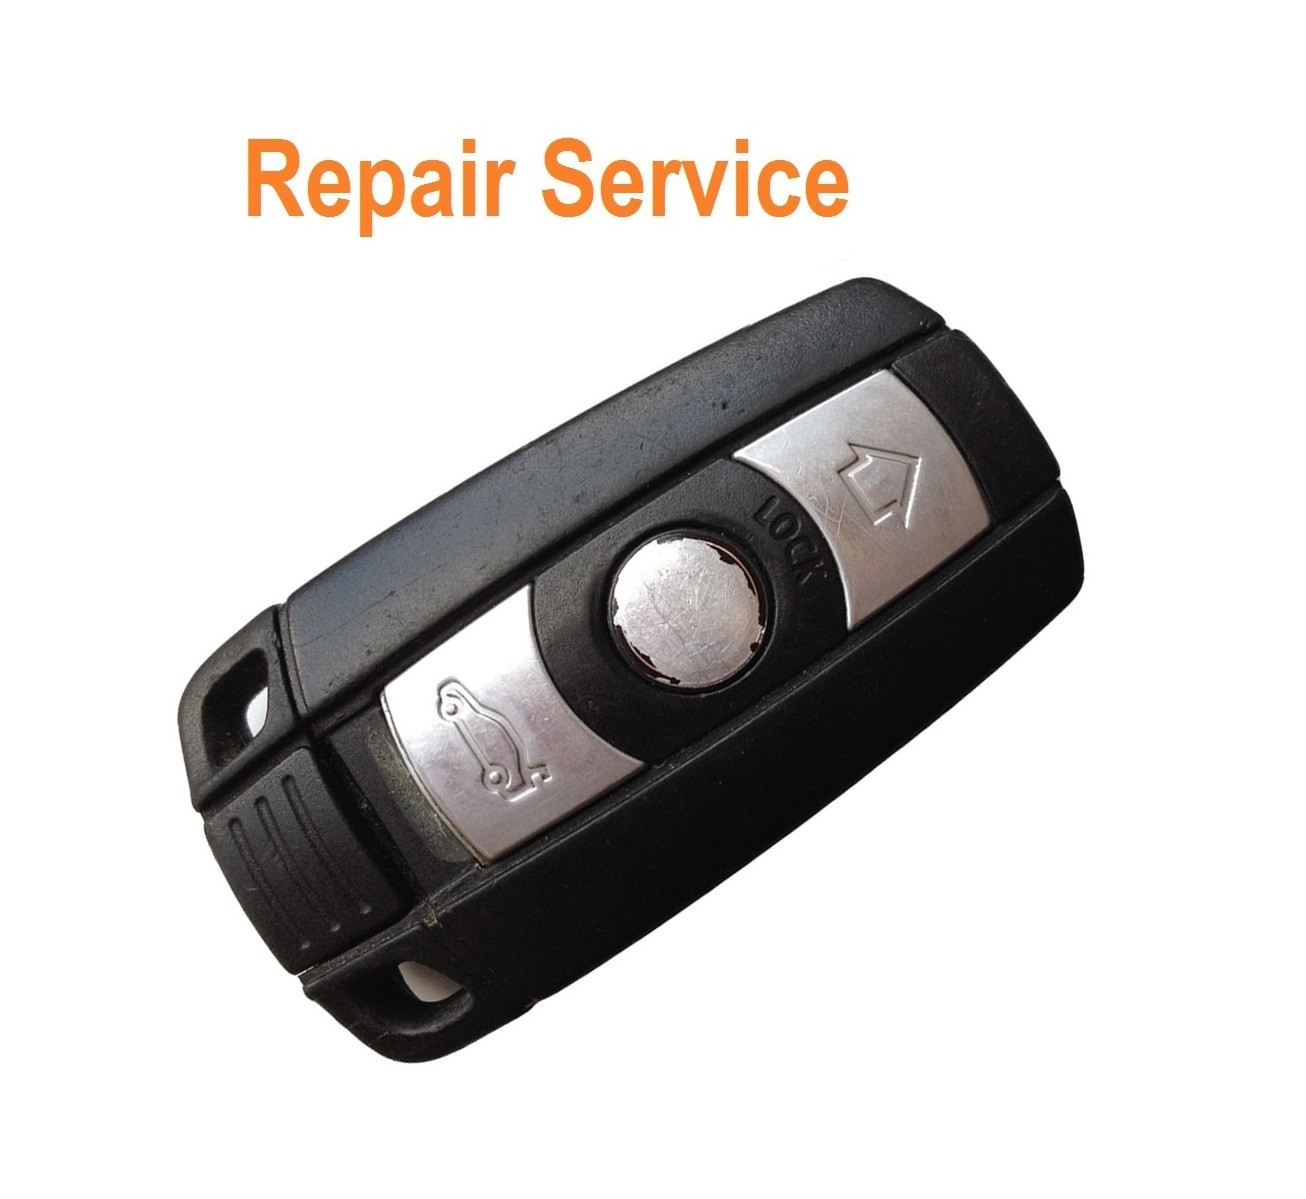 Repair Service for BMW 1 3 5 6 7 Series X3 X5 E90 E93 M3 M5 smart 3 button remote key